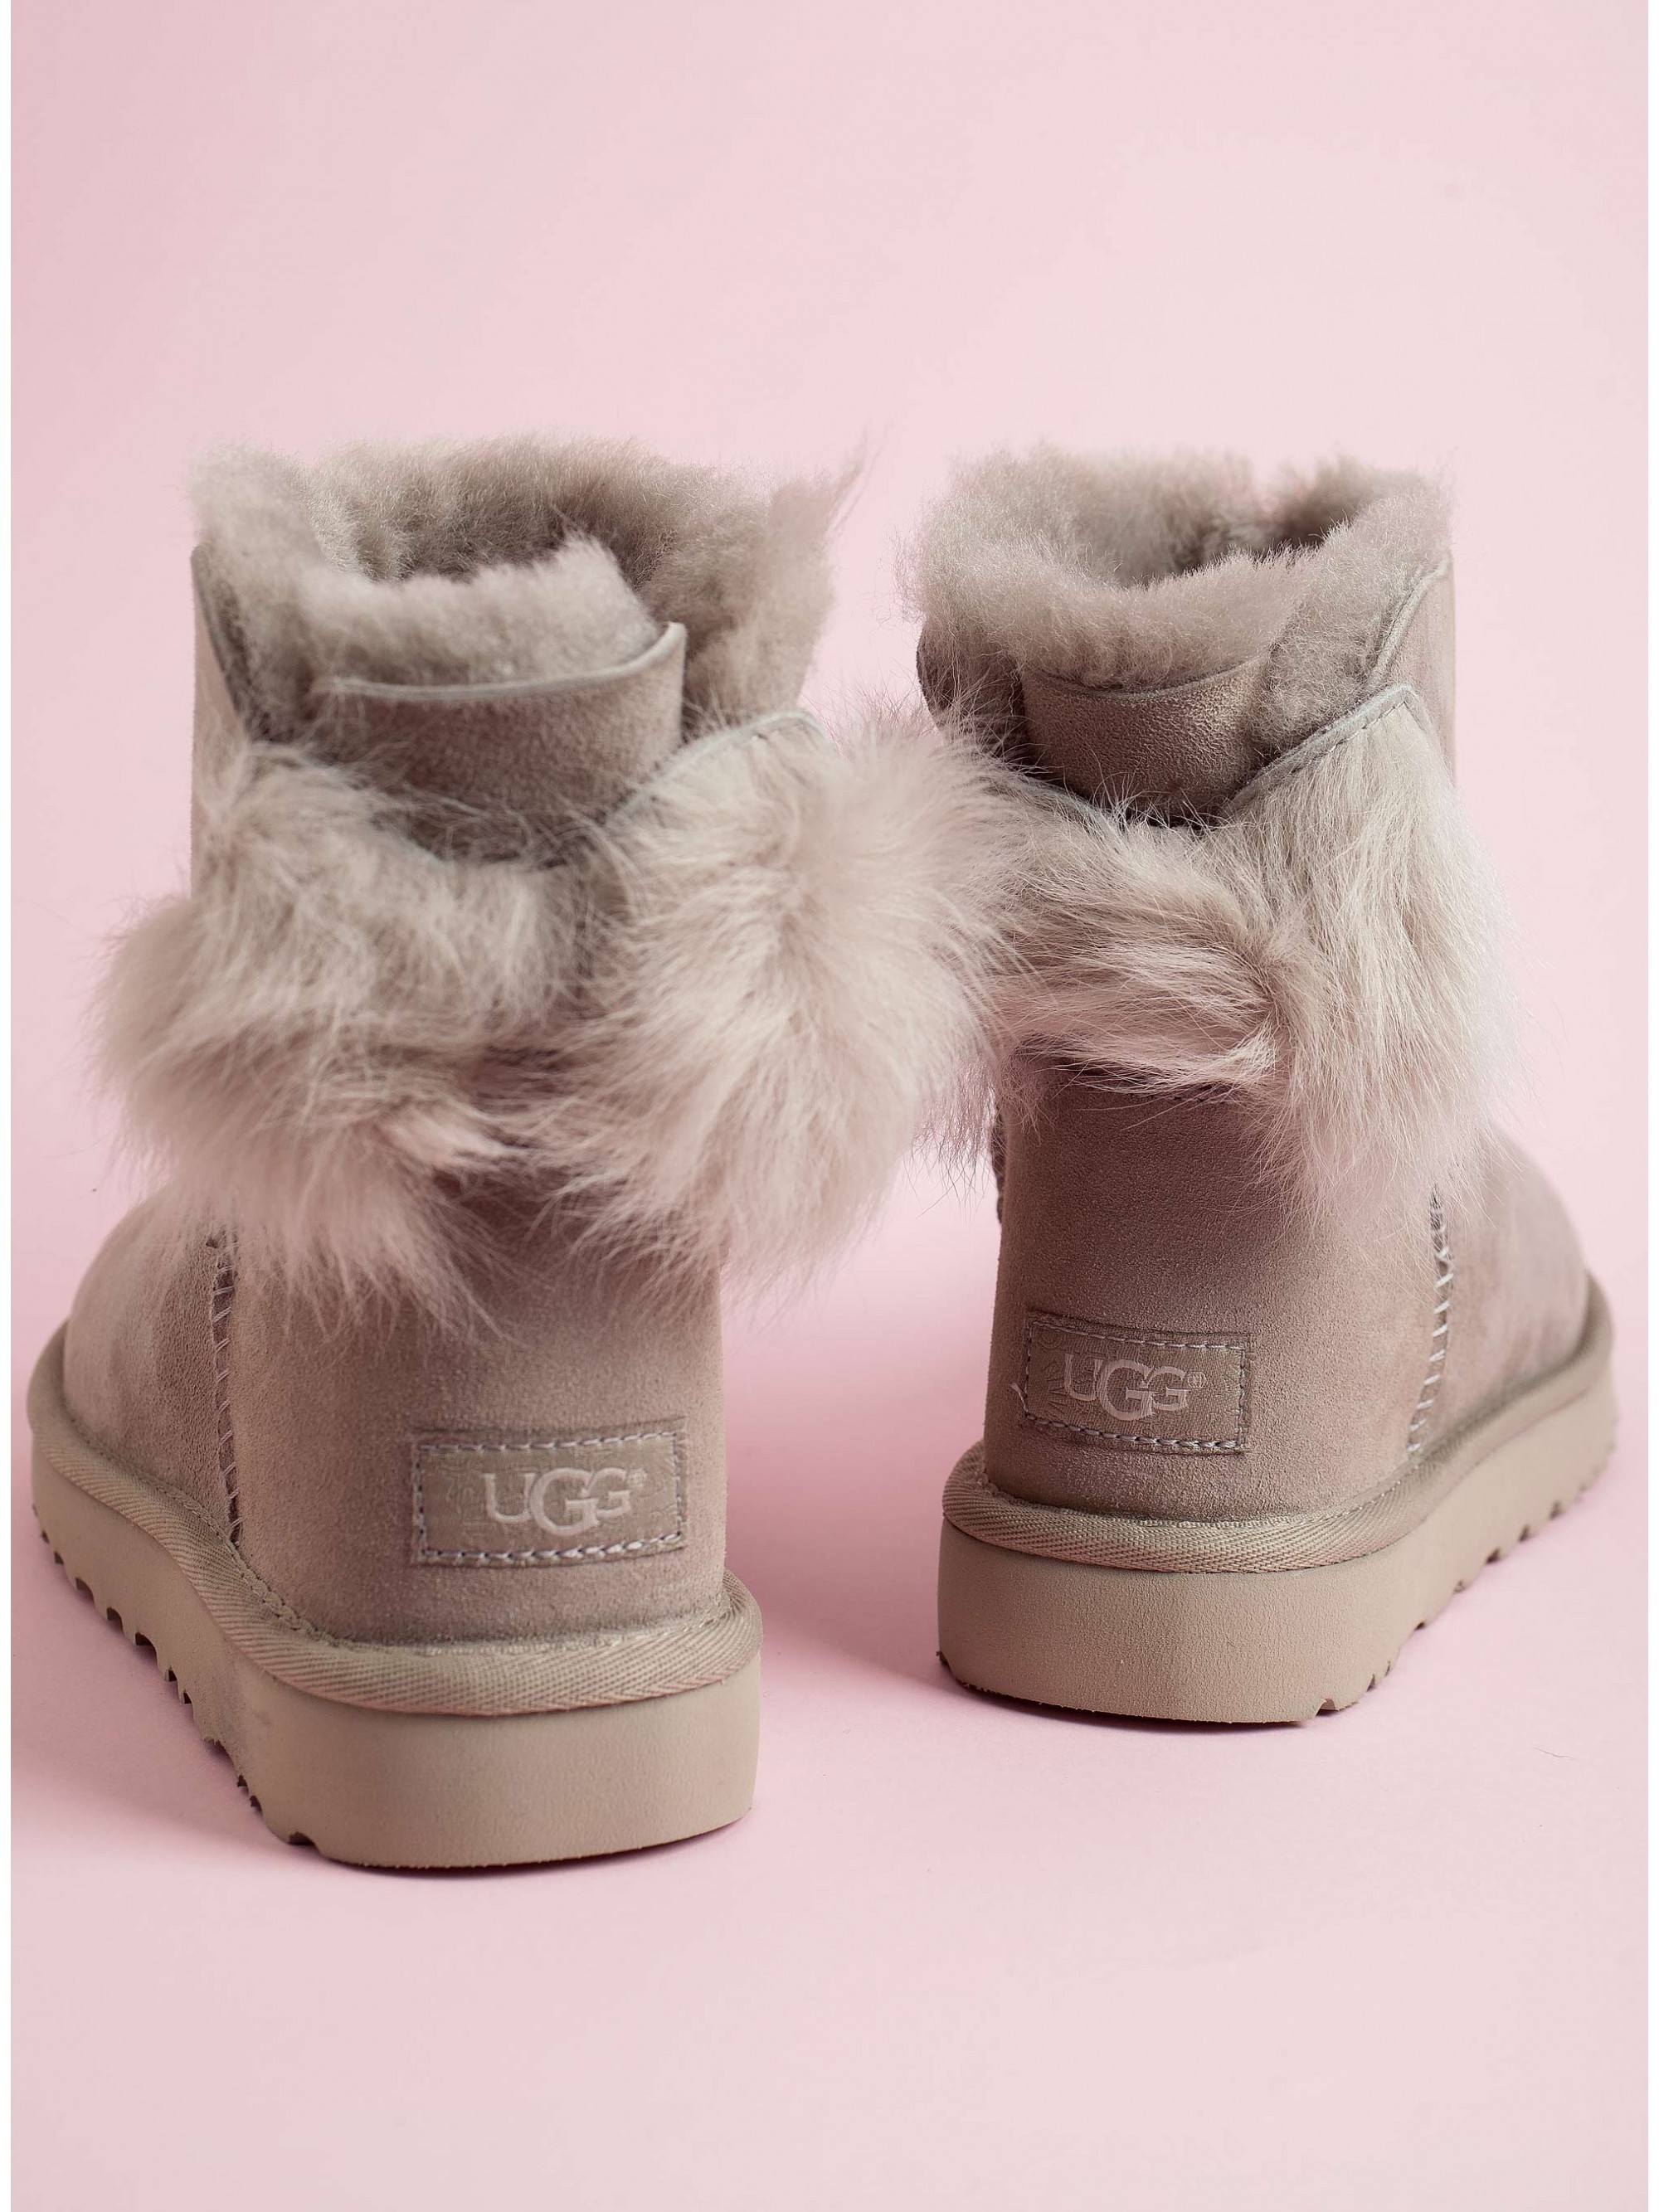 815767386de Ugg Australia Ankle Boots Fluff Bow Mini-Light Grey